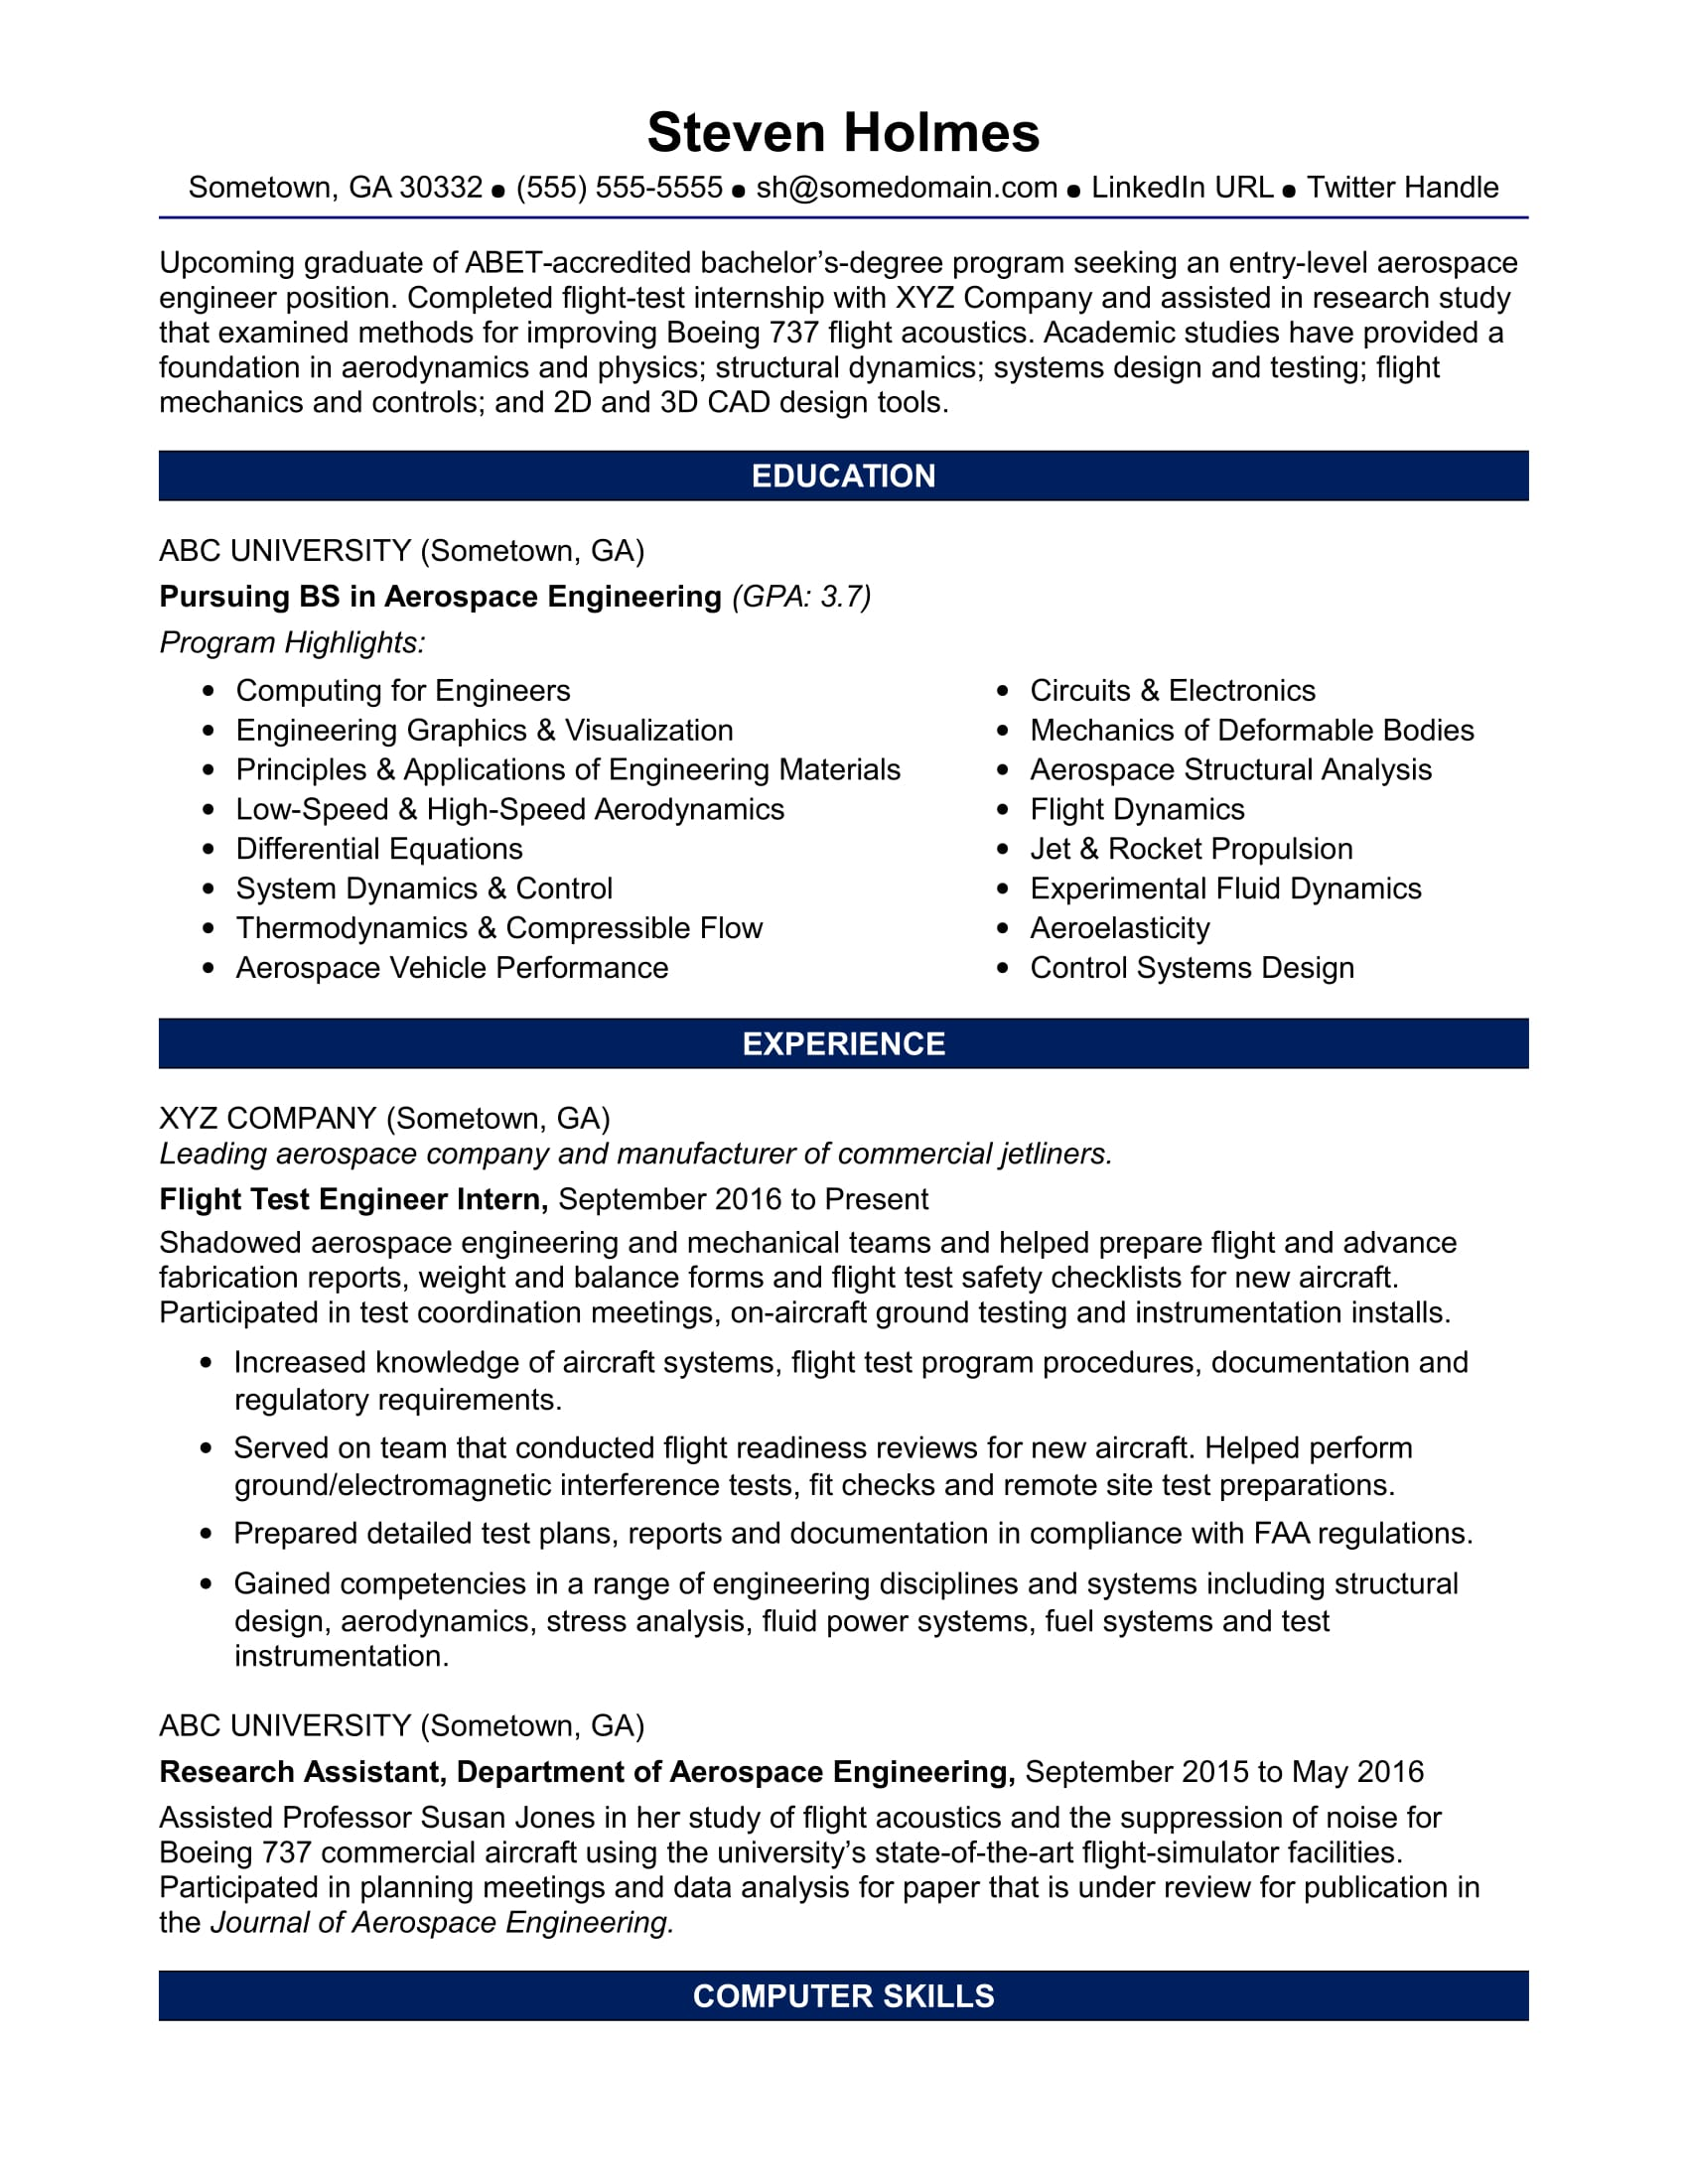 Sample Resume For An Entry Level Aerospace Engineer Monster